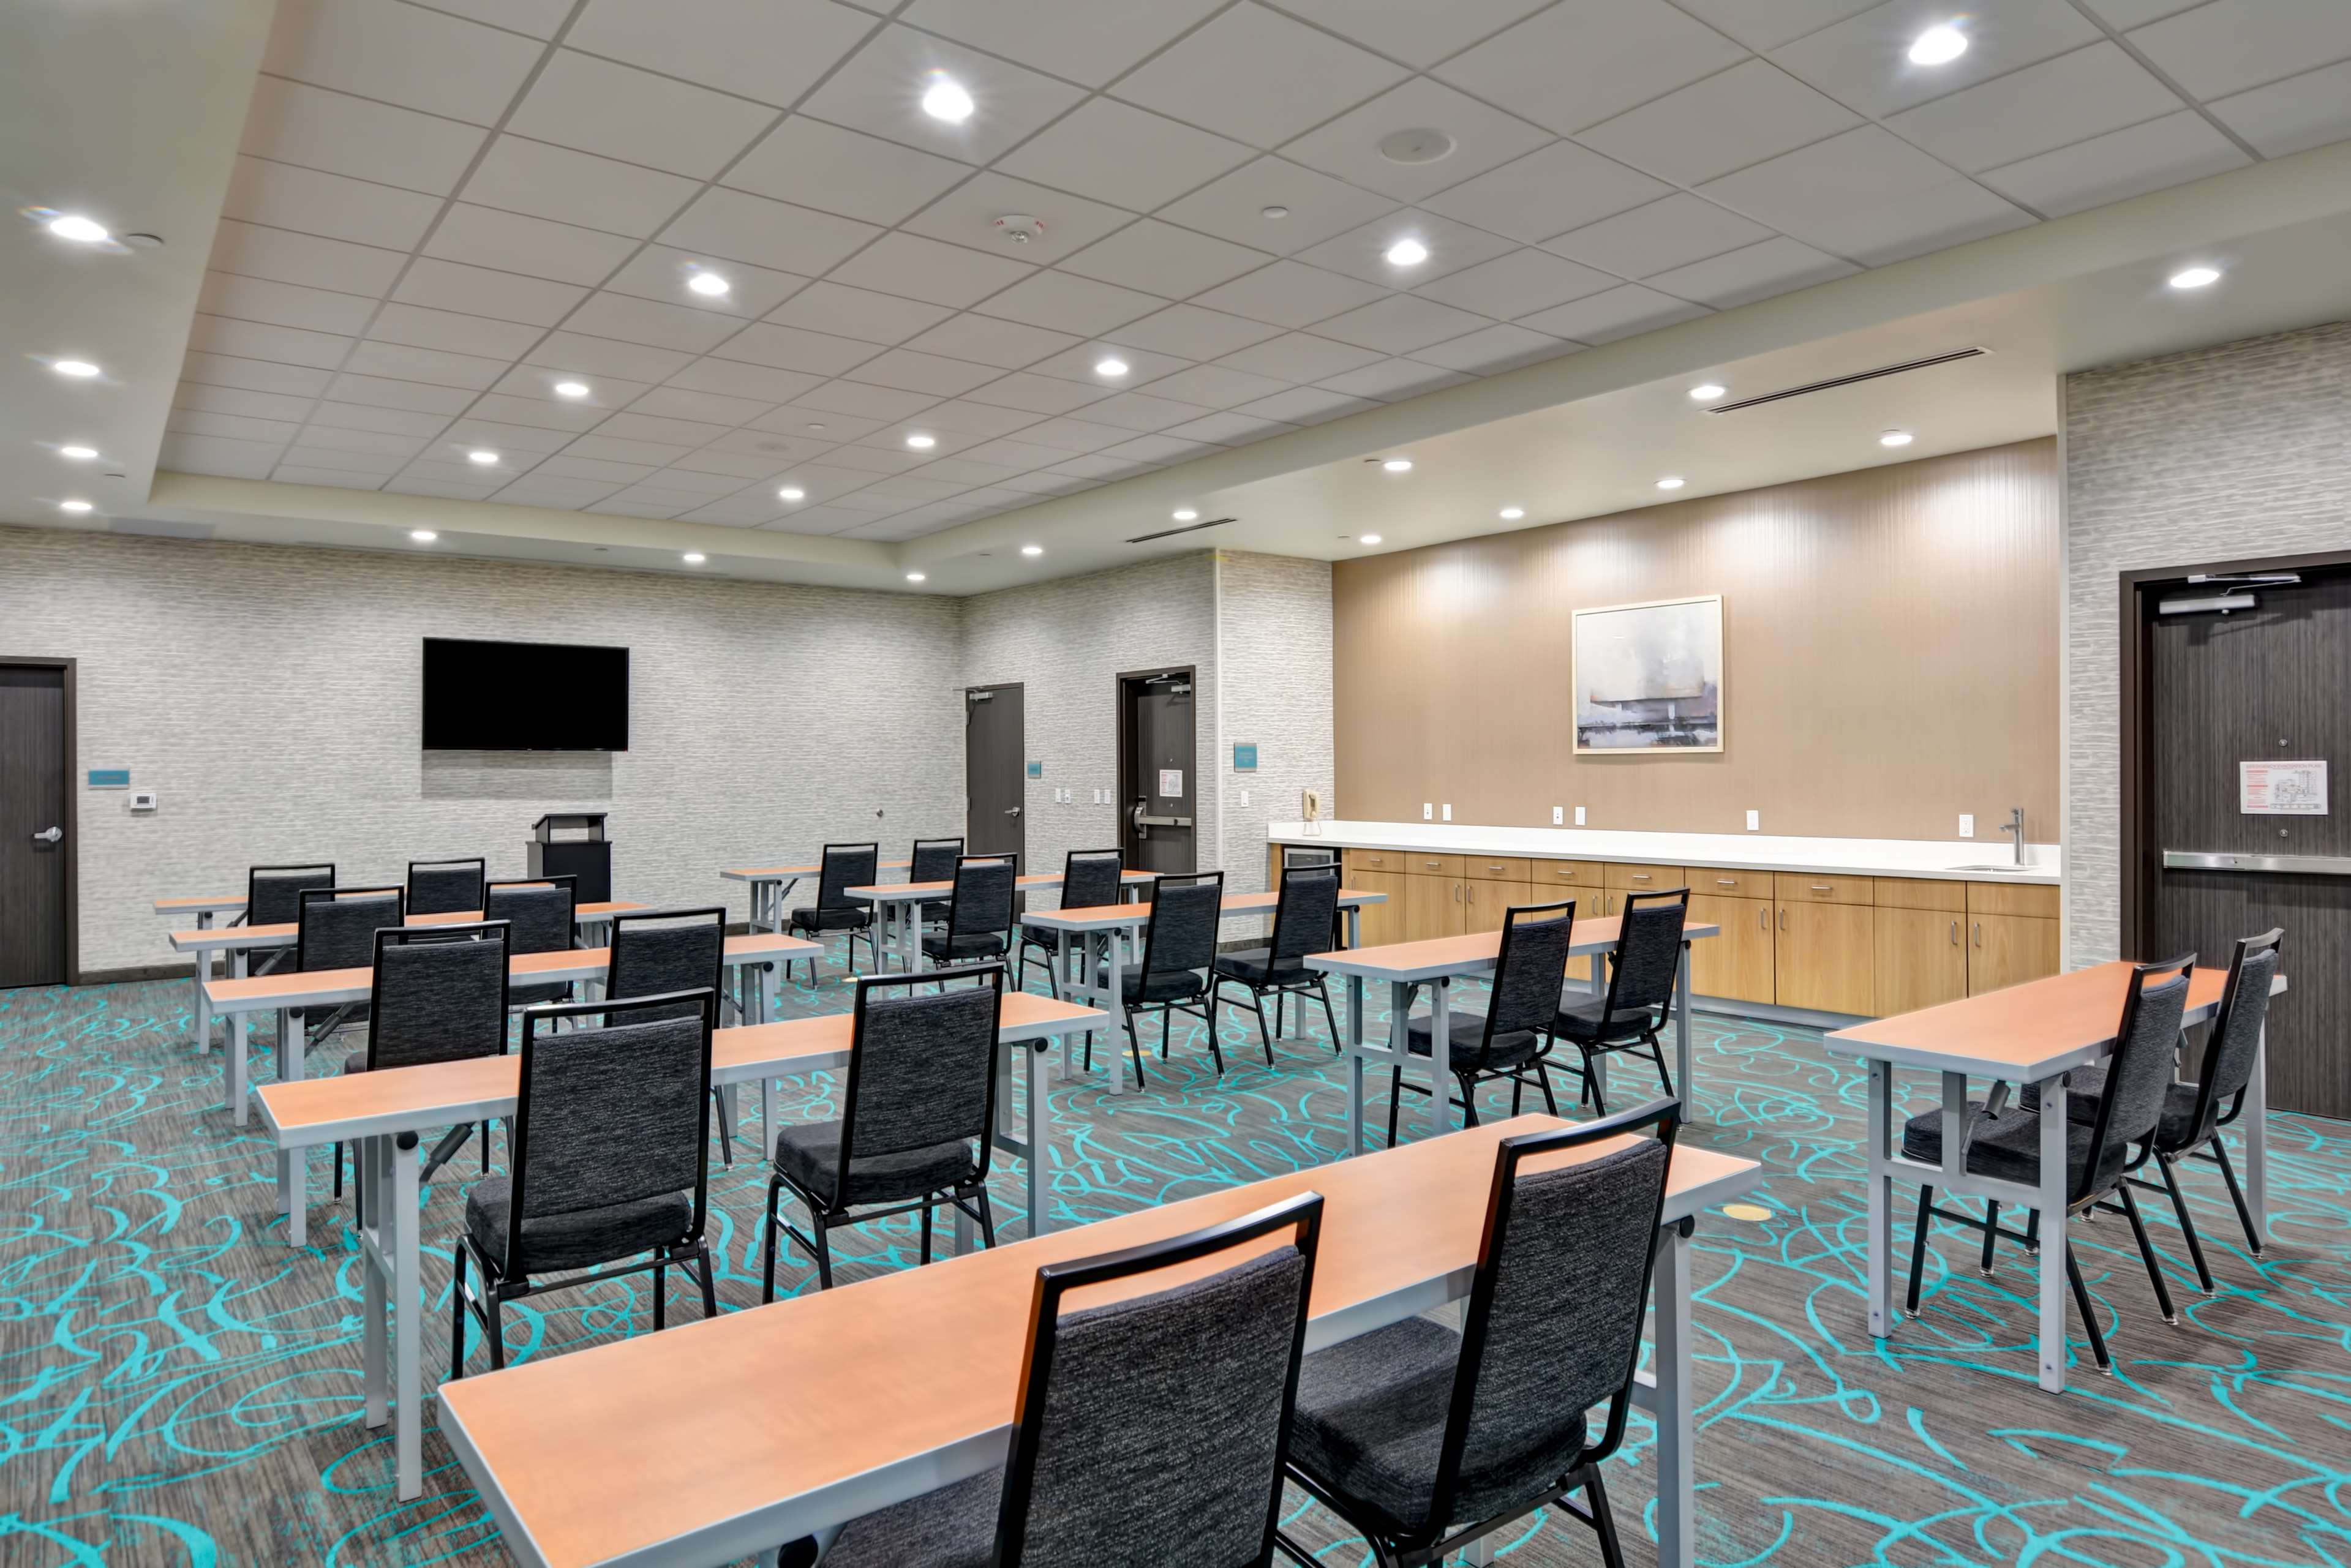 Home2 Suites by Hilton OKC Midwest City Tinker AFB image 36